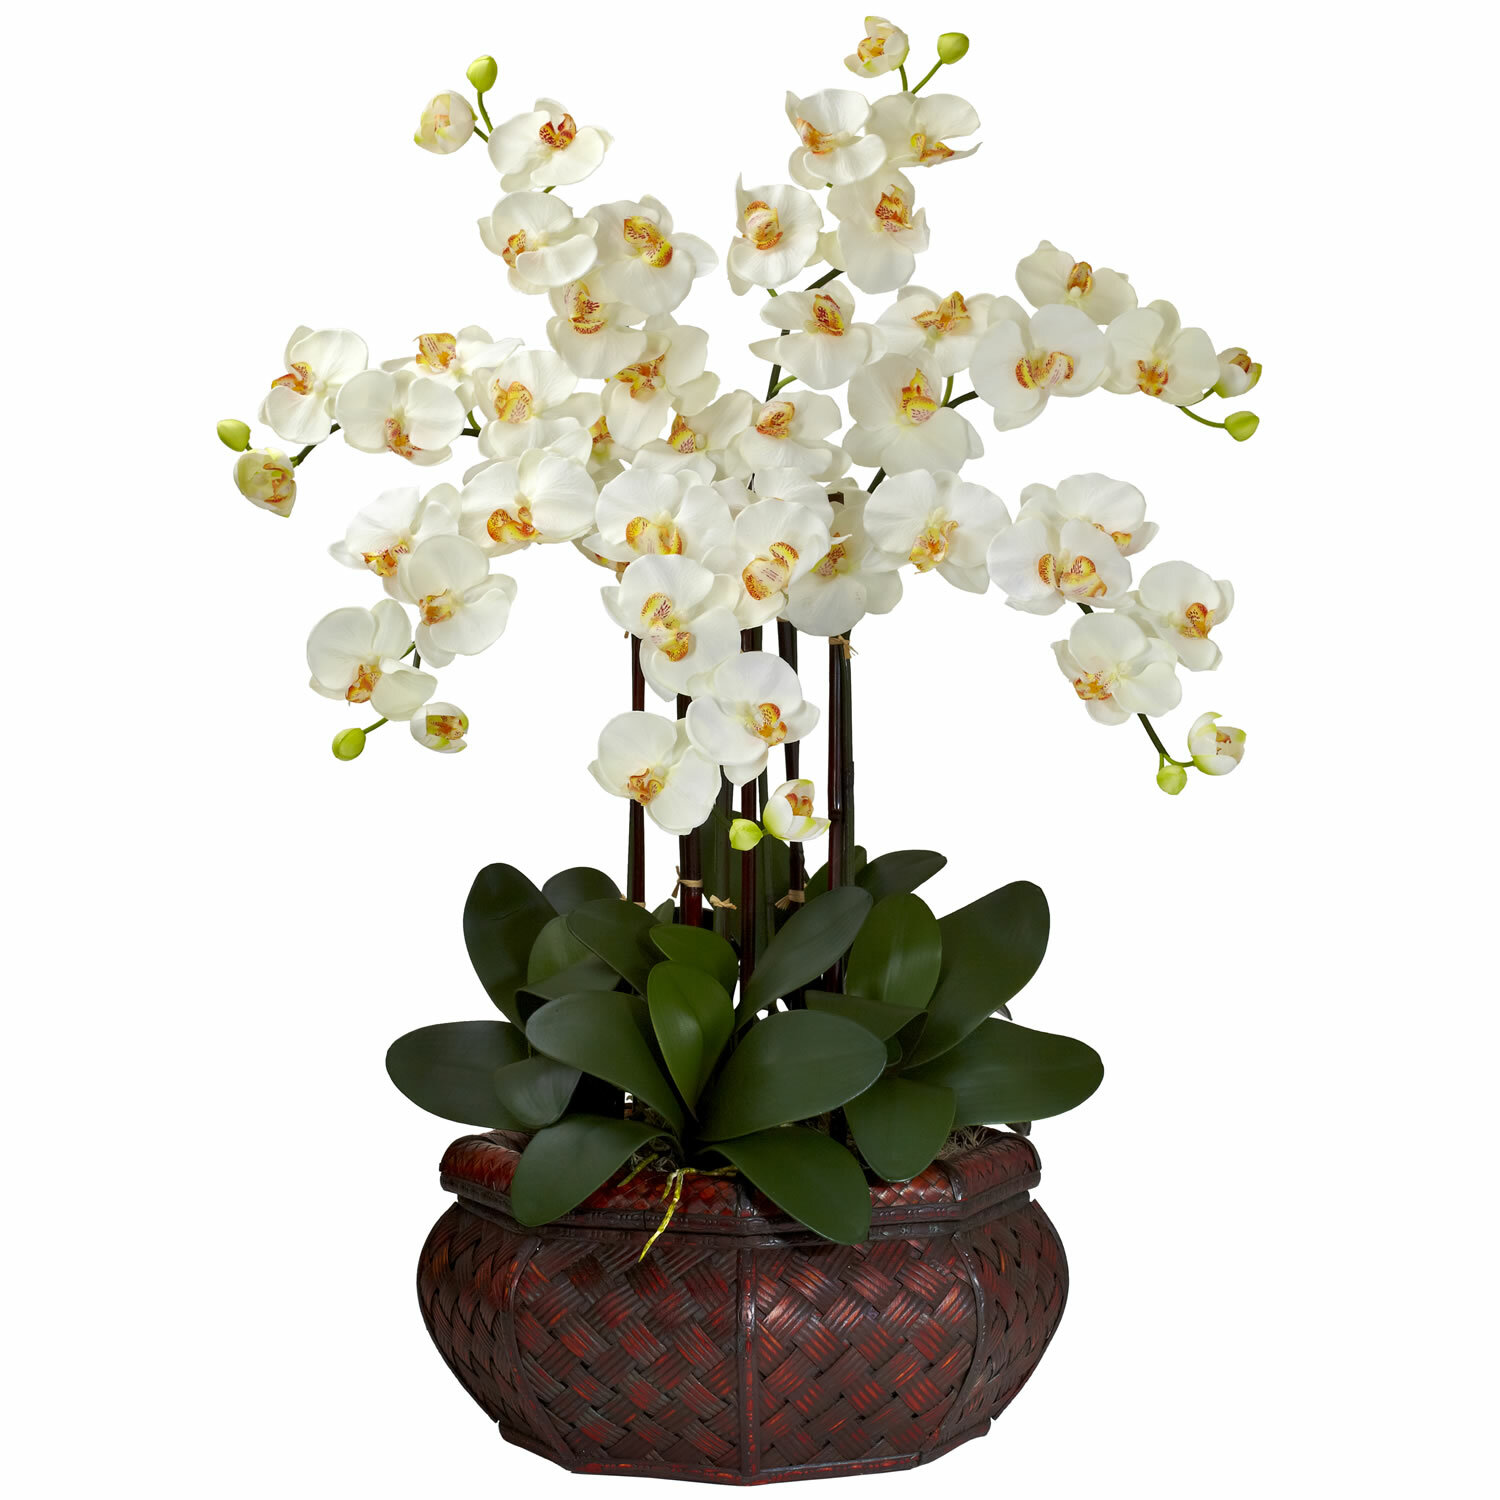 Charlton home large phalaenopsis silk flower arrangement reviews charlton home large phalaenopsis silk flower arrangement reviews wayfair mightylinksfo